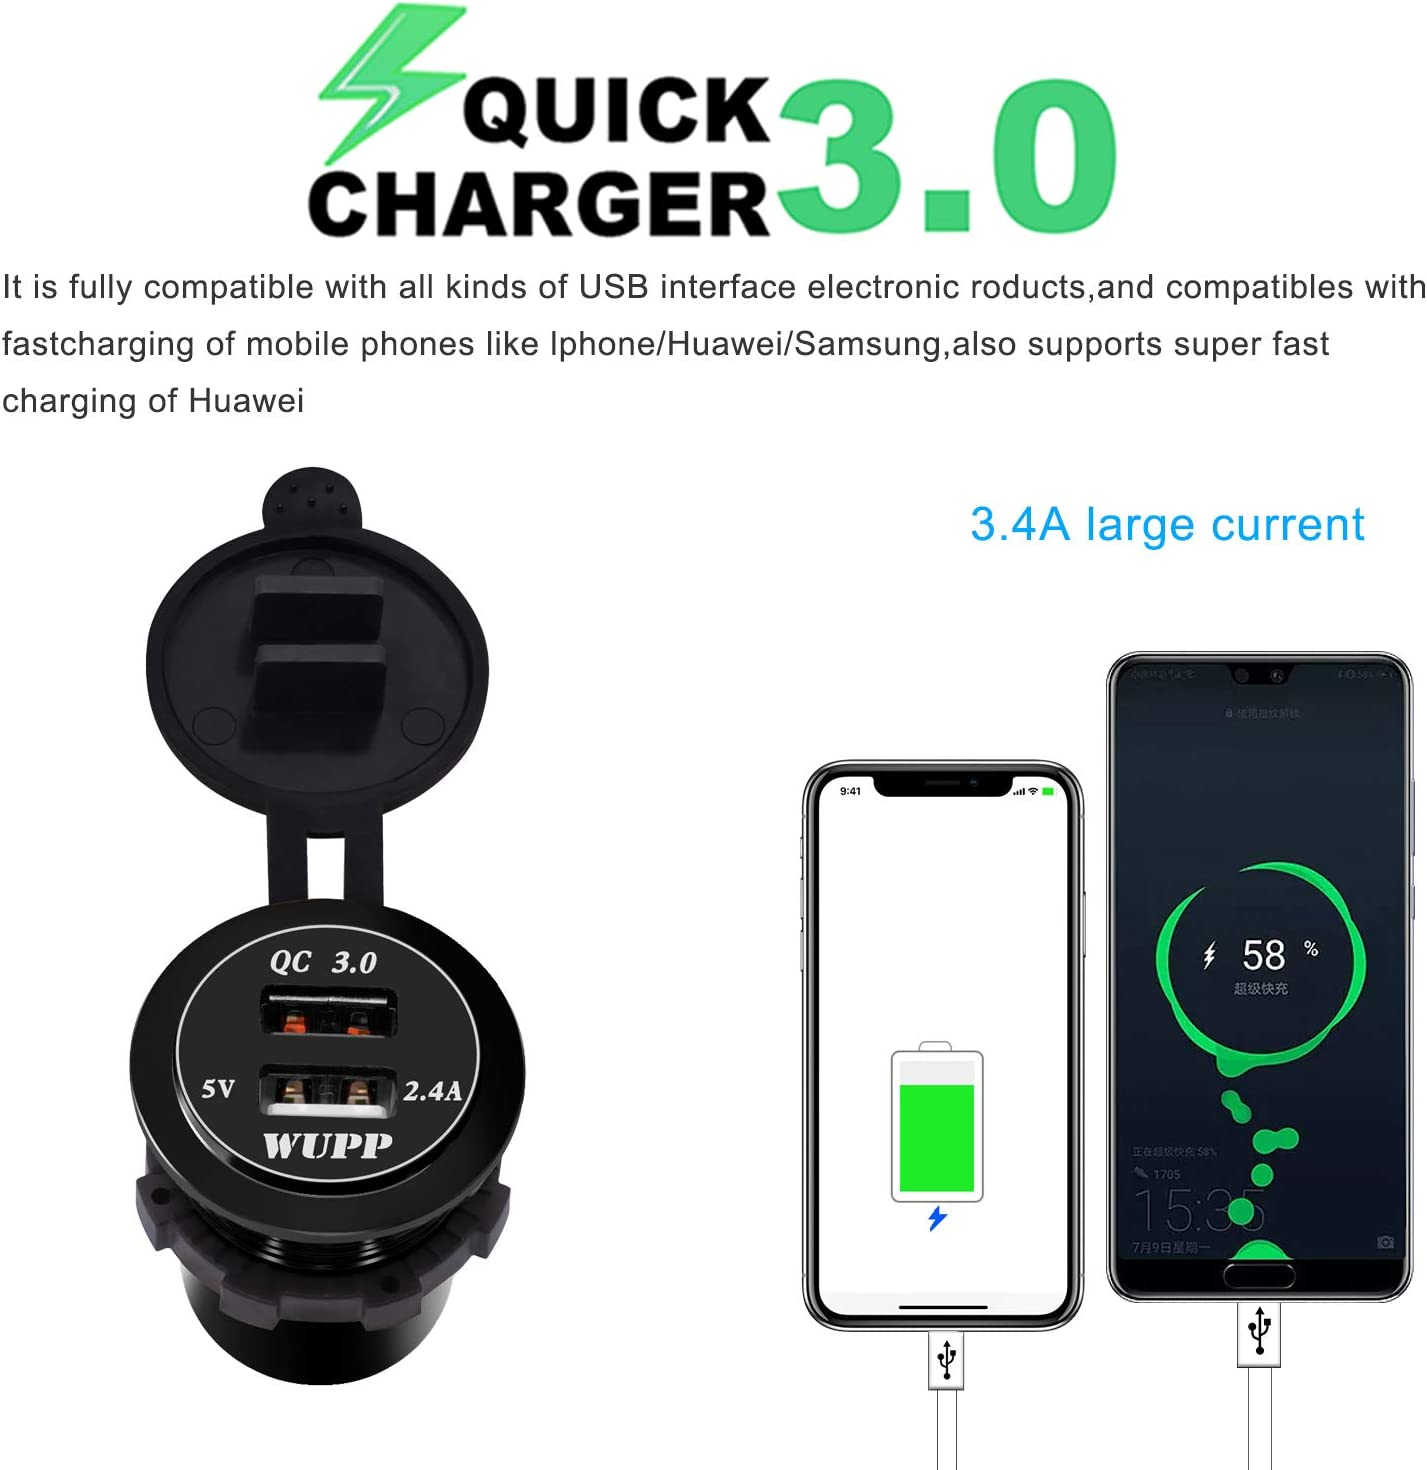 Silver BlueFire Upgraded Aluminum Alloy Fast Charging 3.0 USB Charger Socket IP66 Waterproof Dual USB Power Outlet with QC 3.0 USB Port /& 5V 2.4A Port Led Light for Car Boat Marine Rv Motorcycle